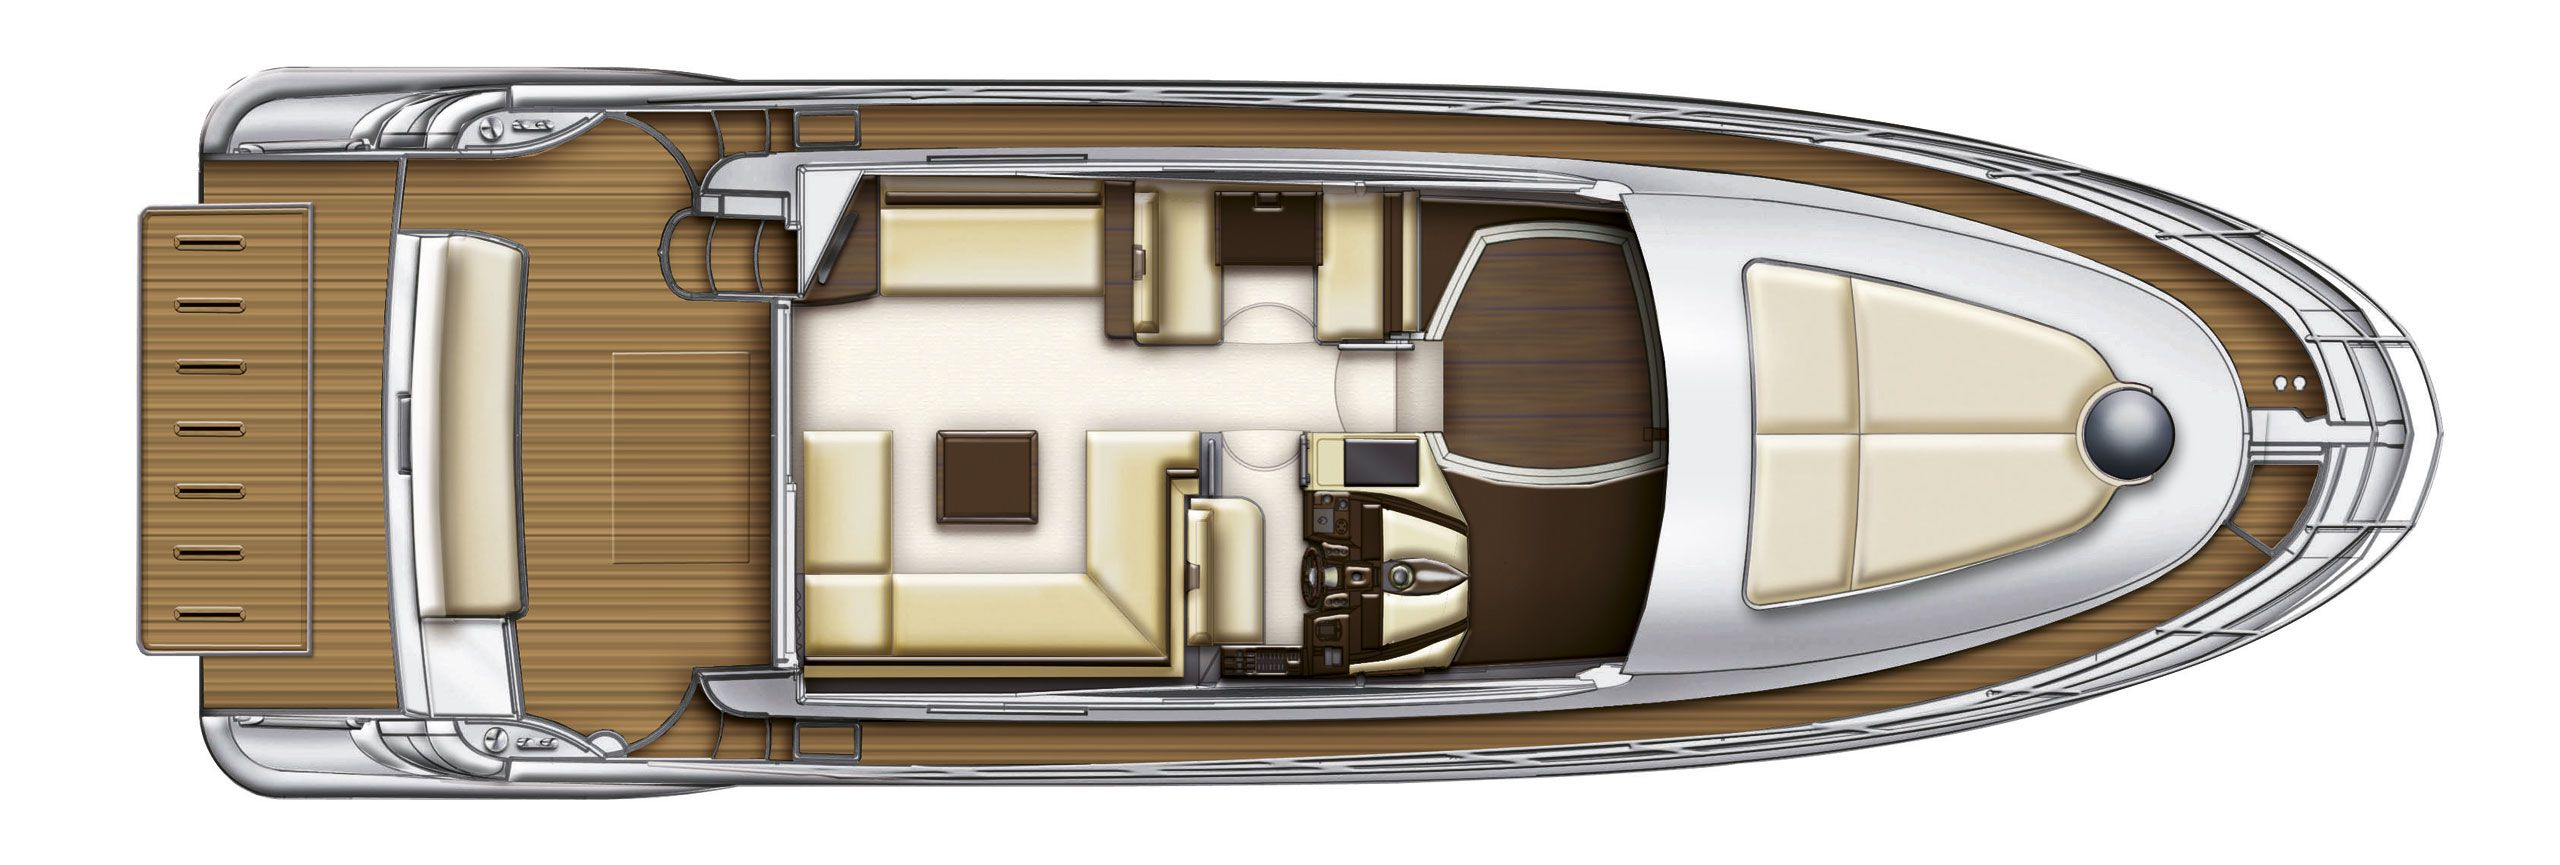 Azimut 48 cs yachting for Innenarchitekt yacht